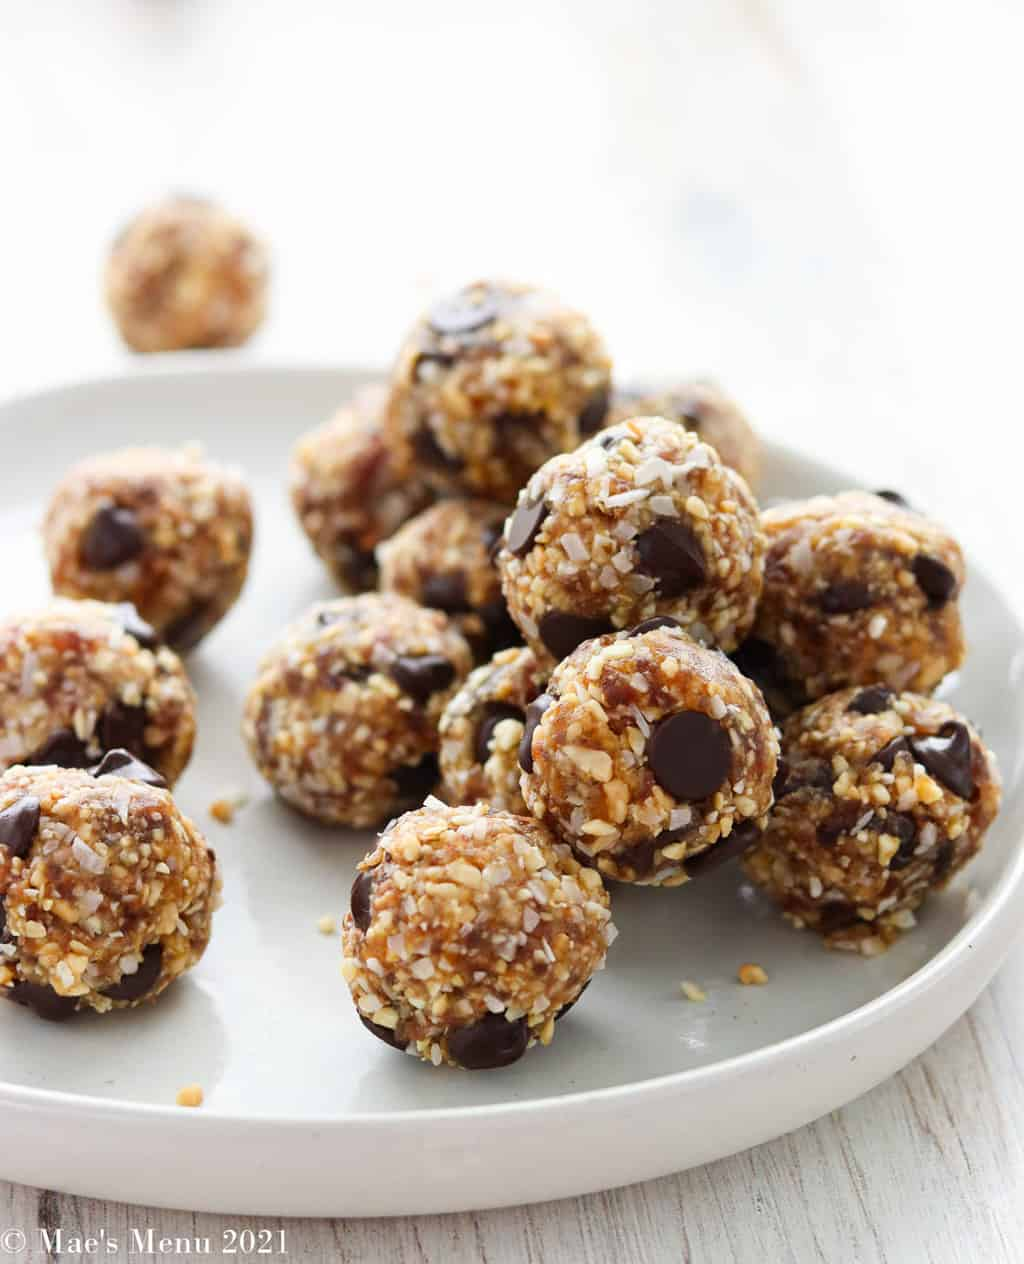 A pile of date energy balls on a white plate